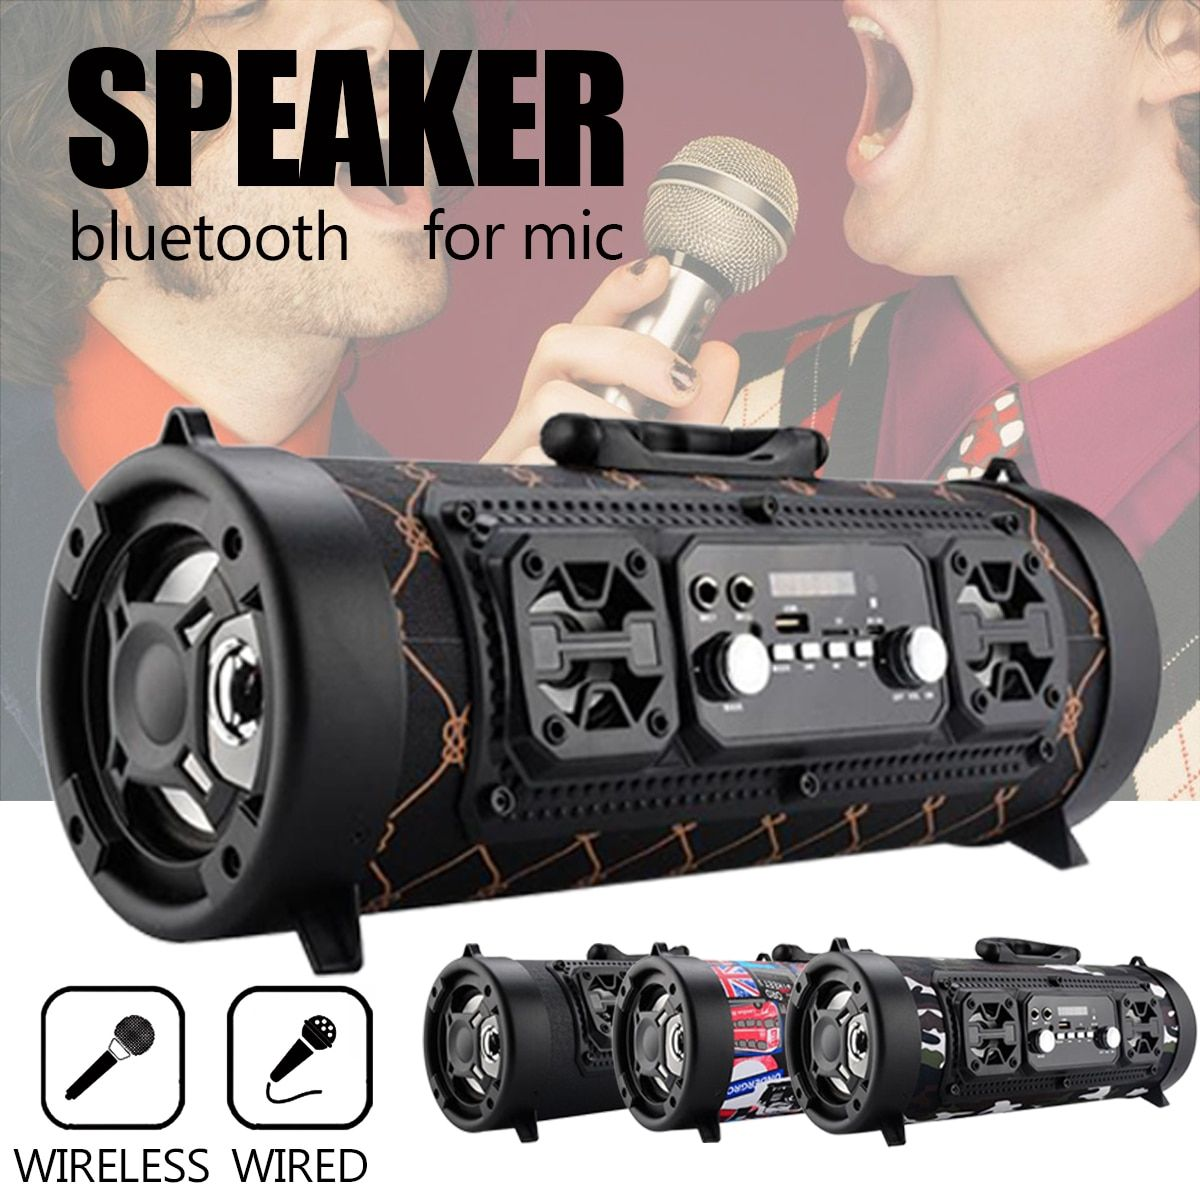 Portable Wireless Bluetooth 4.2 Speaker Hifi Music Surround Stereo USB/ AUX/TF Card Subwoofer Loudspeaker Brass with MIC Outdoor